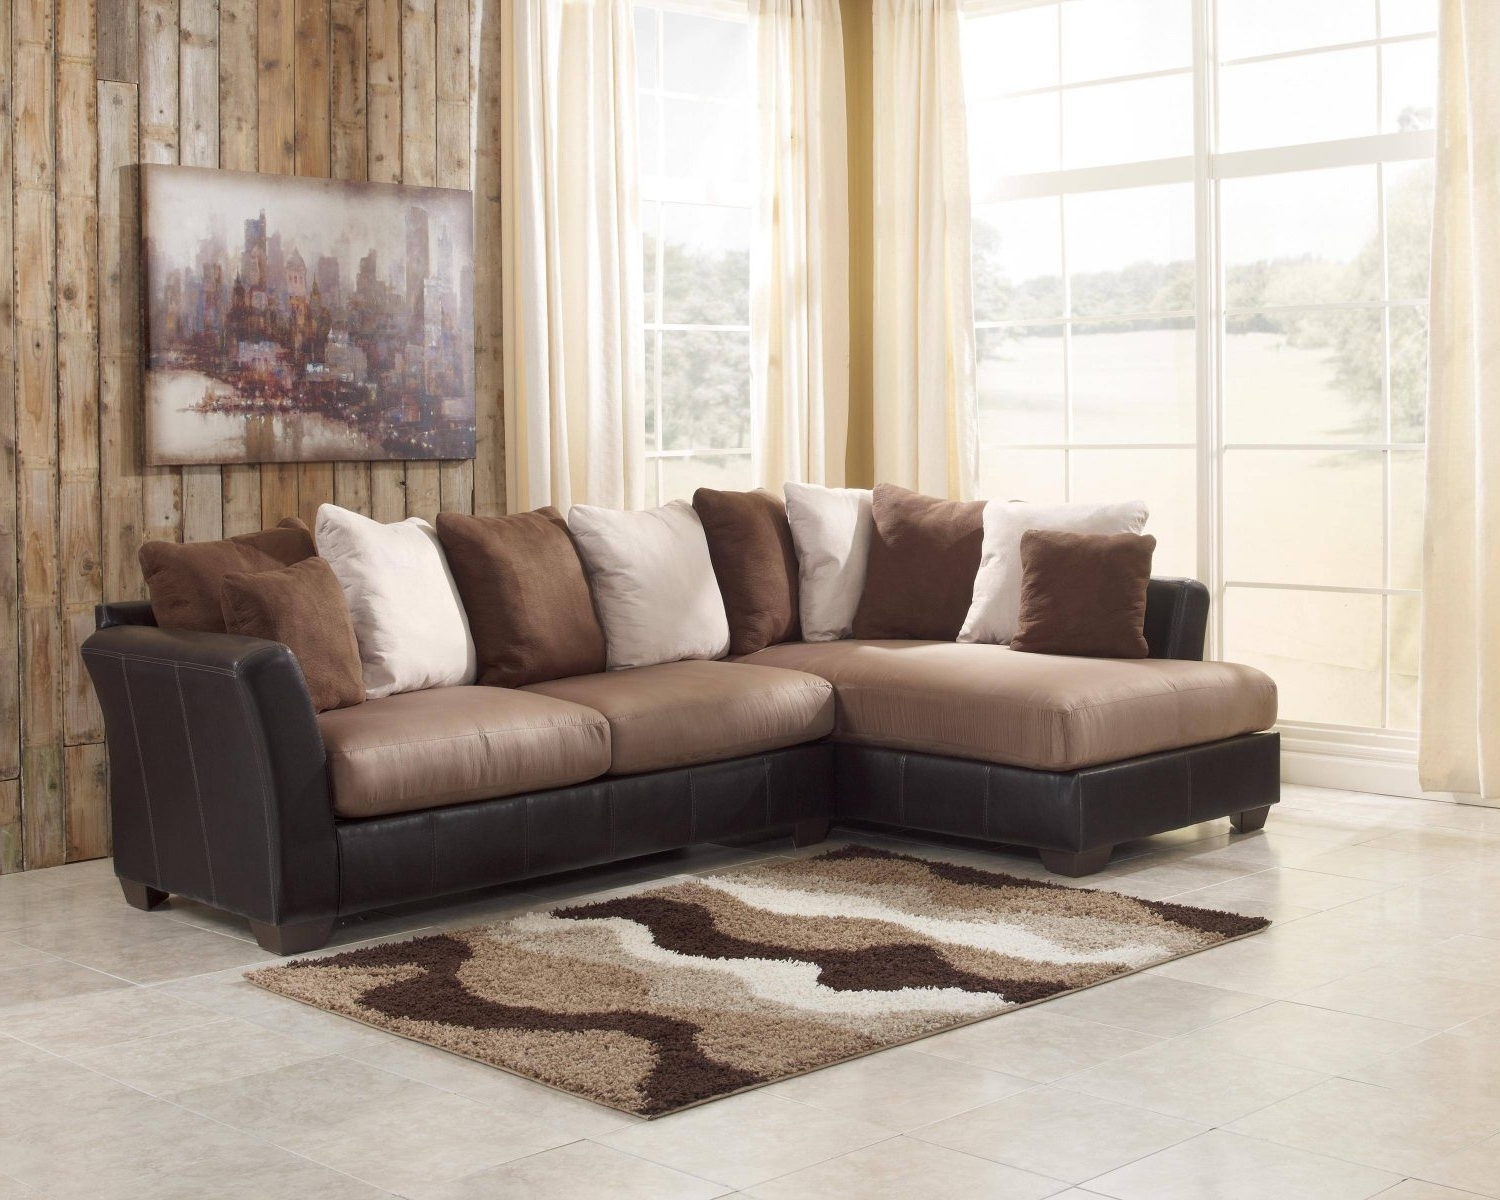 Widely Used Sectional Sofa With Chaises Furniture Nice Traditional Sofas With Regard To 2 Piece Sectionals With Chaise Lounge (View 15 of 15)